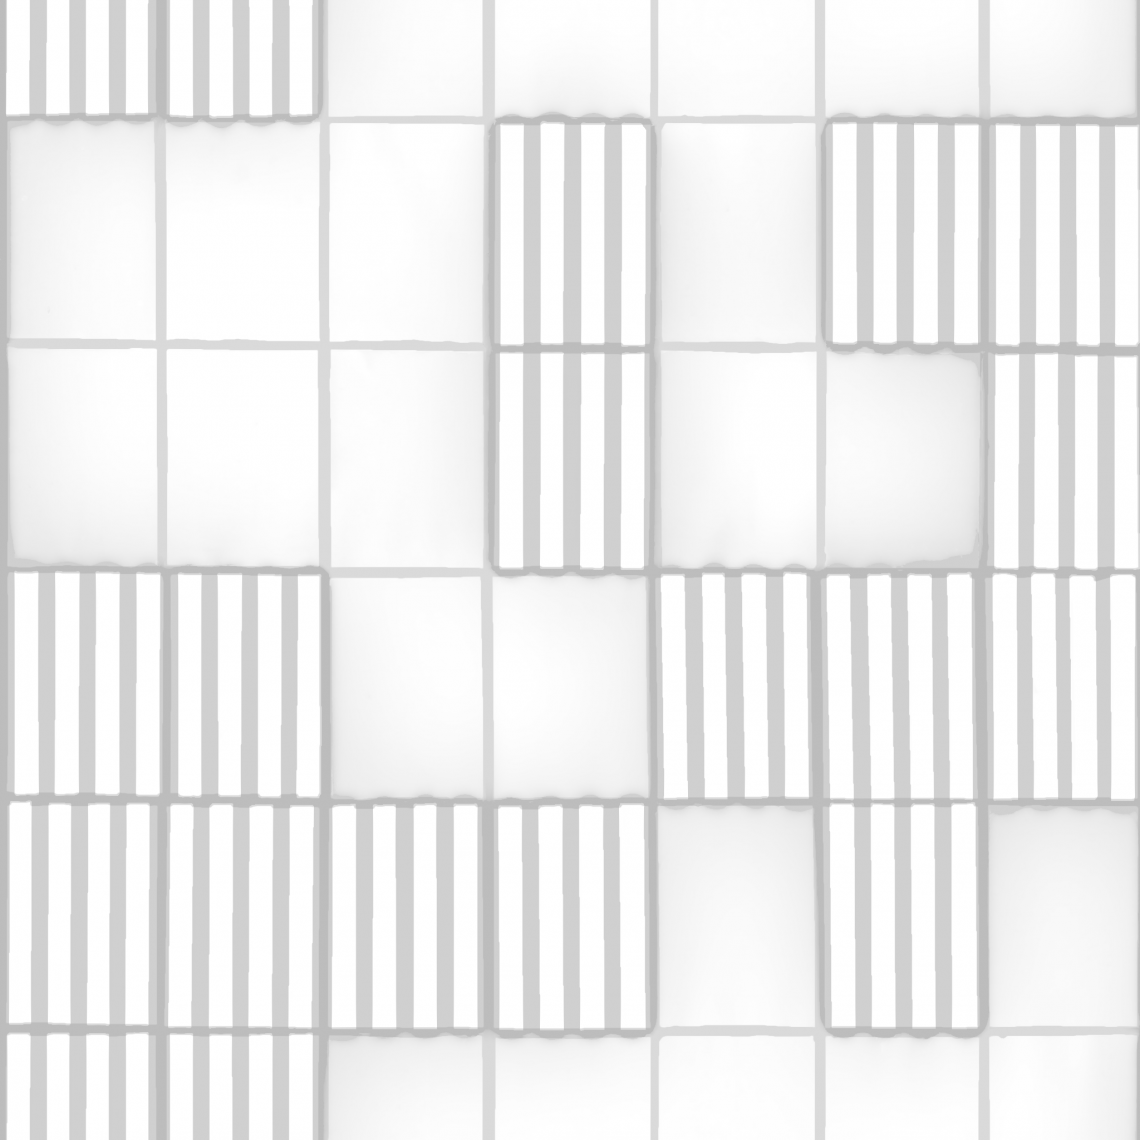 Red-Tiles-01-Ambient-Occlusion